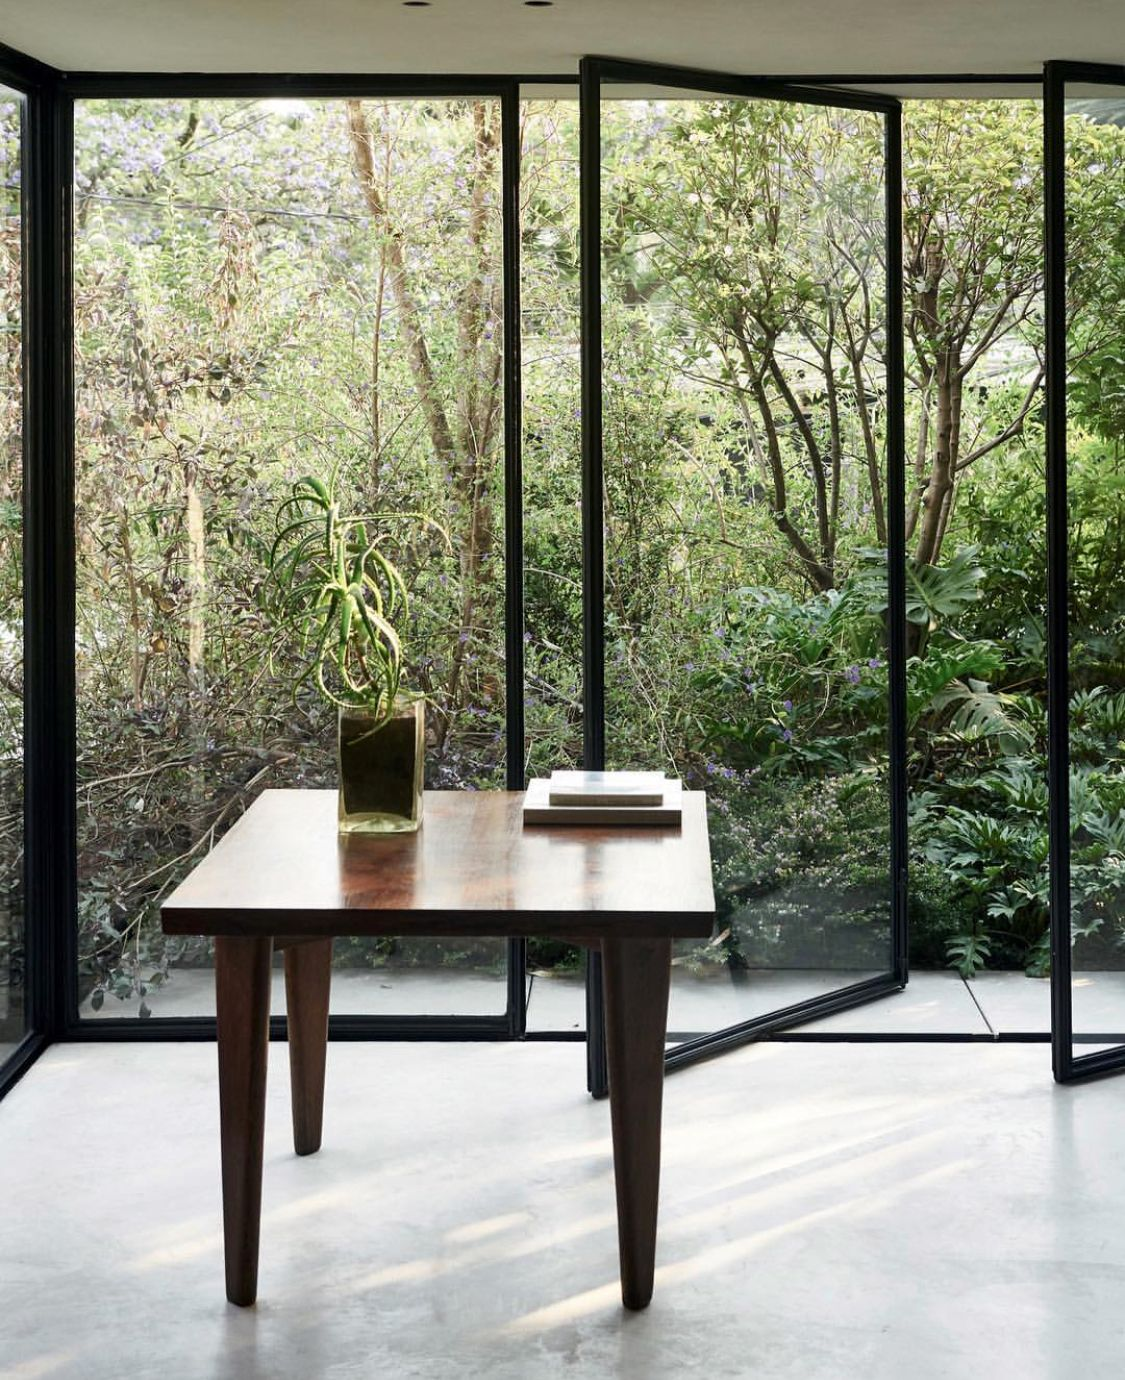 Pin by Nora Szalai on Interieur Pinterest Weekend house and House